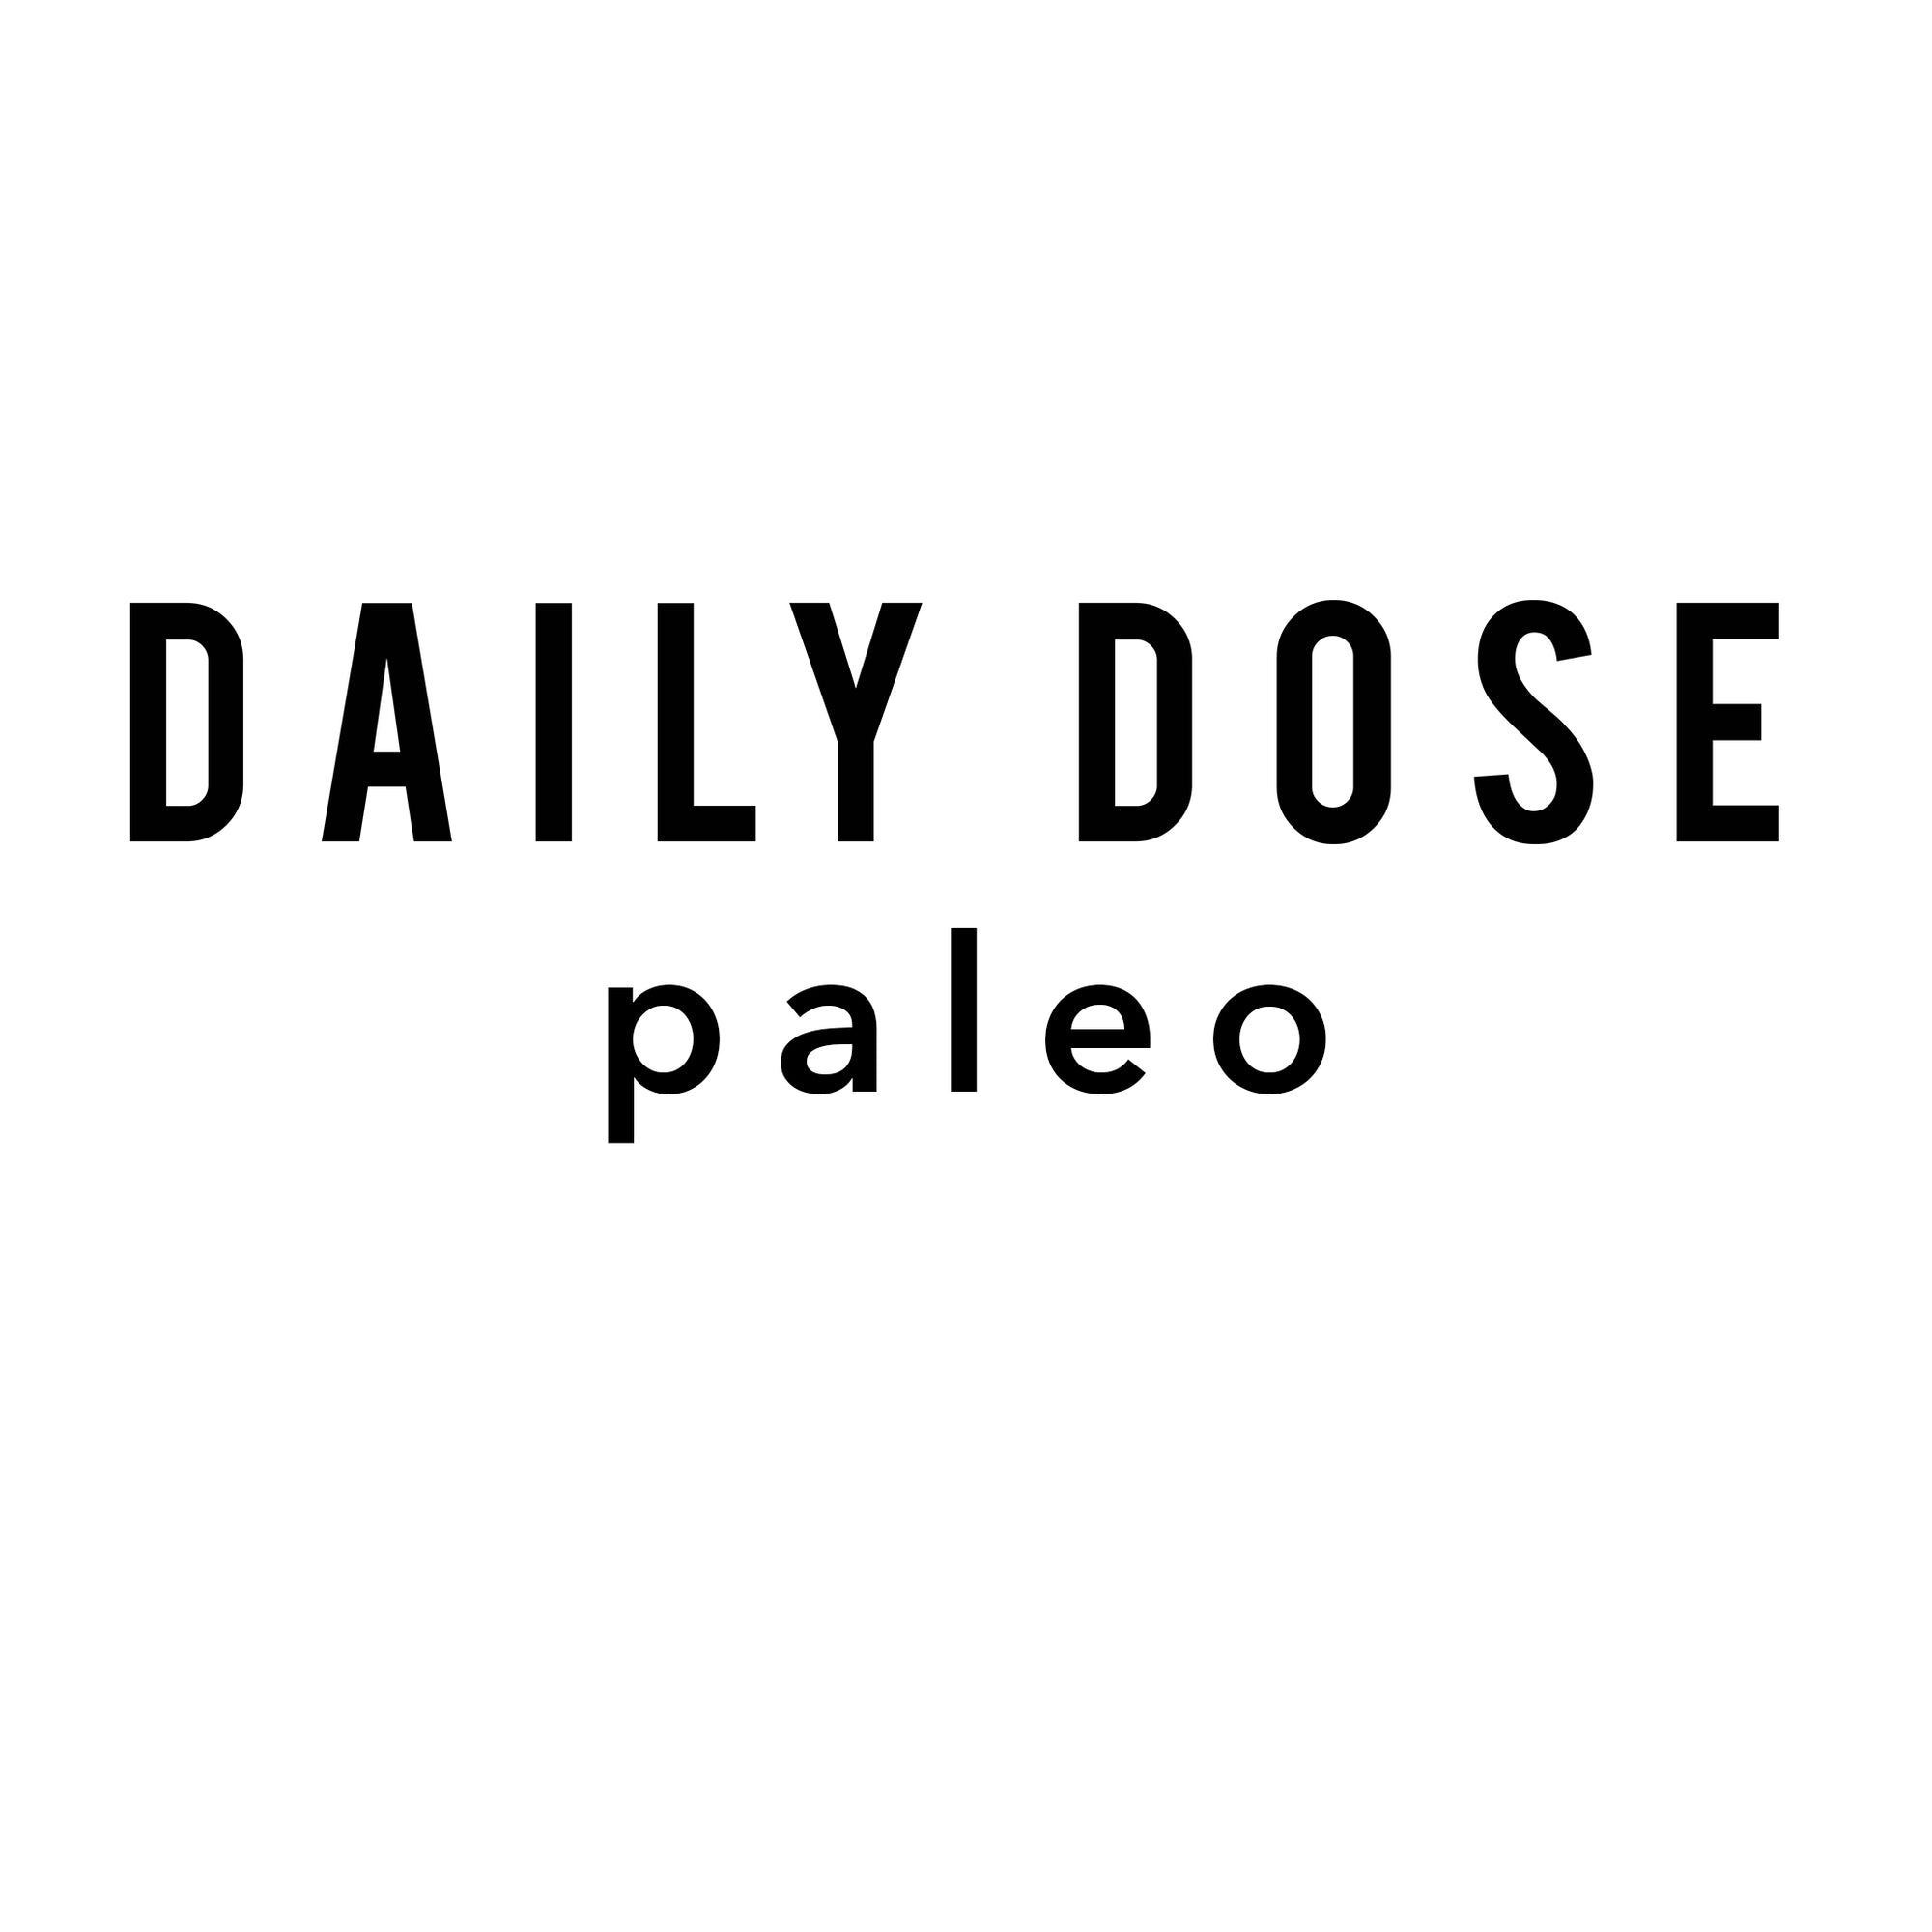 Daily Dose Paleo: Healthy food and habits, every day